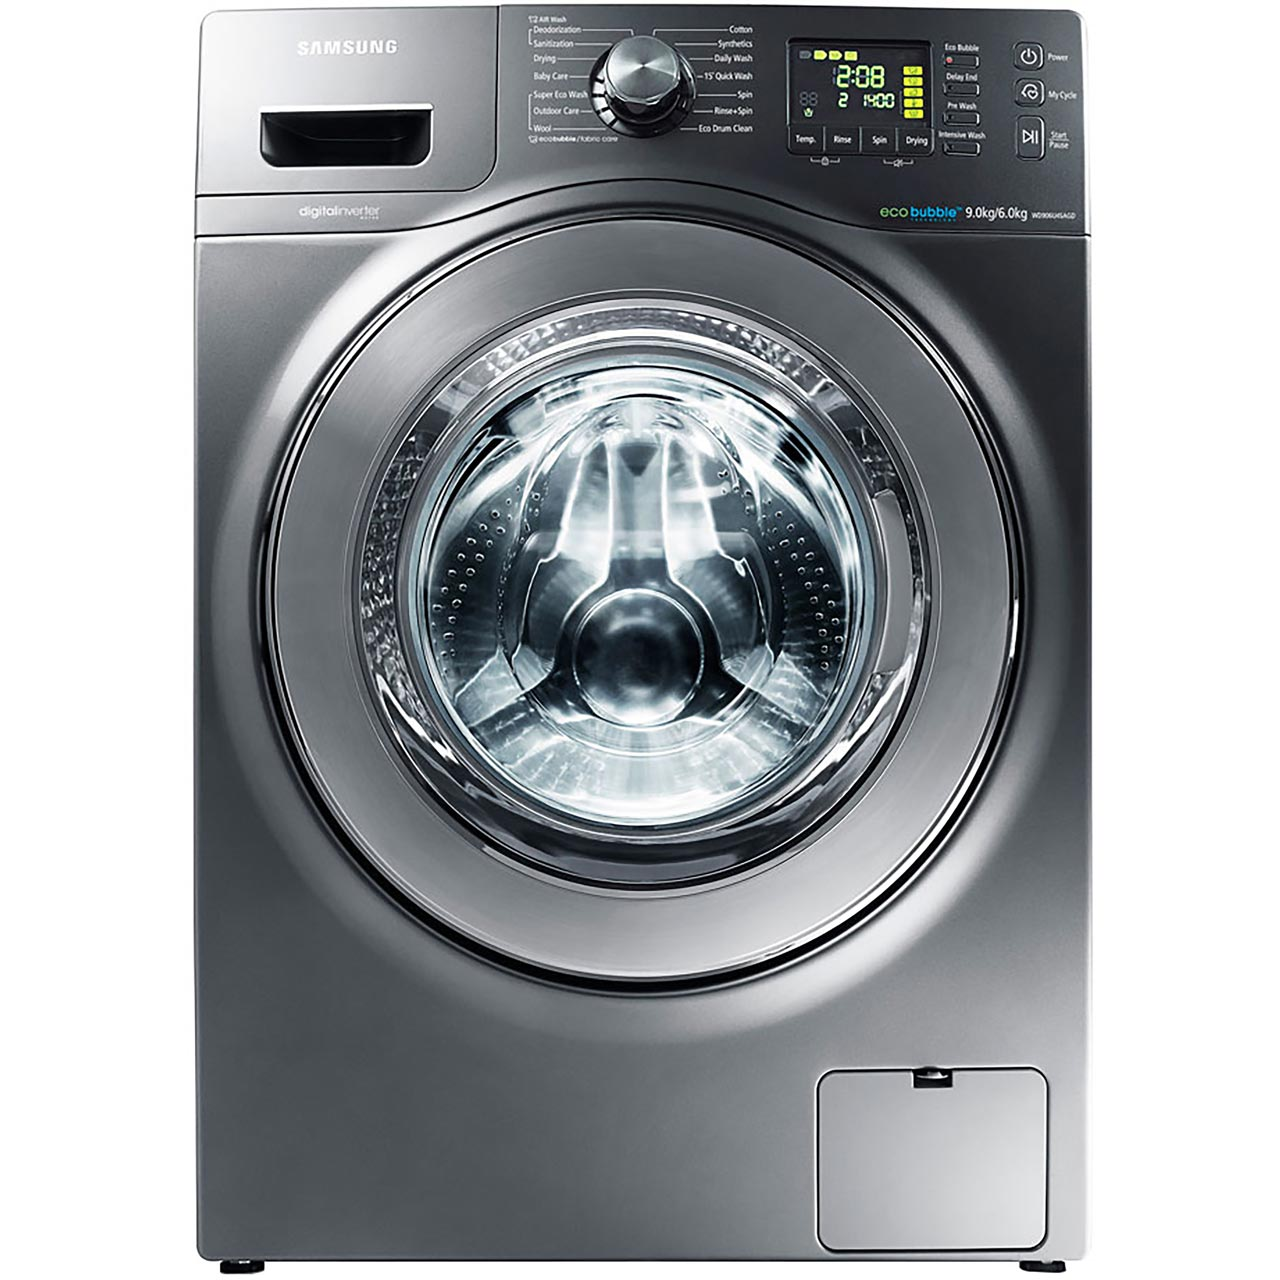 Samsung Ecobubble WD906U4SAGD 9Kg / 6Kg Washer Dryer with 1400 rpm - Stainless Steel Look